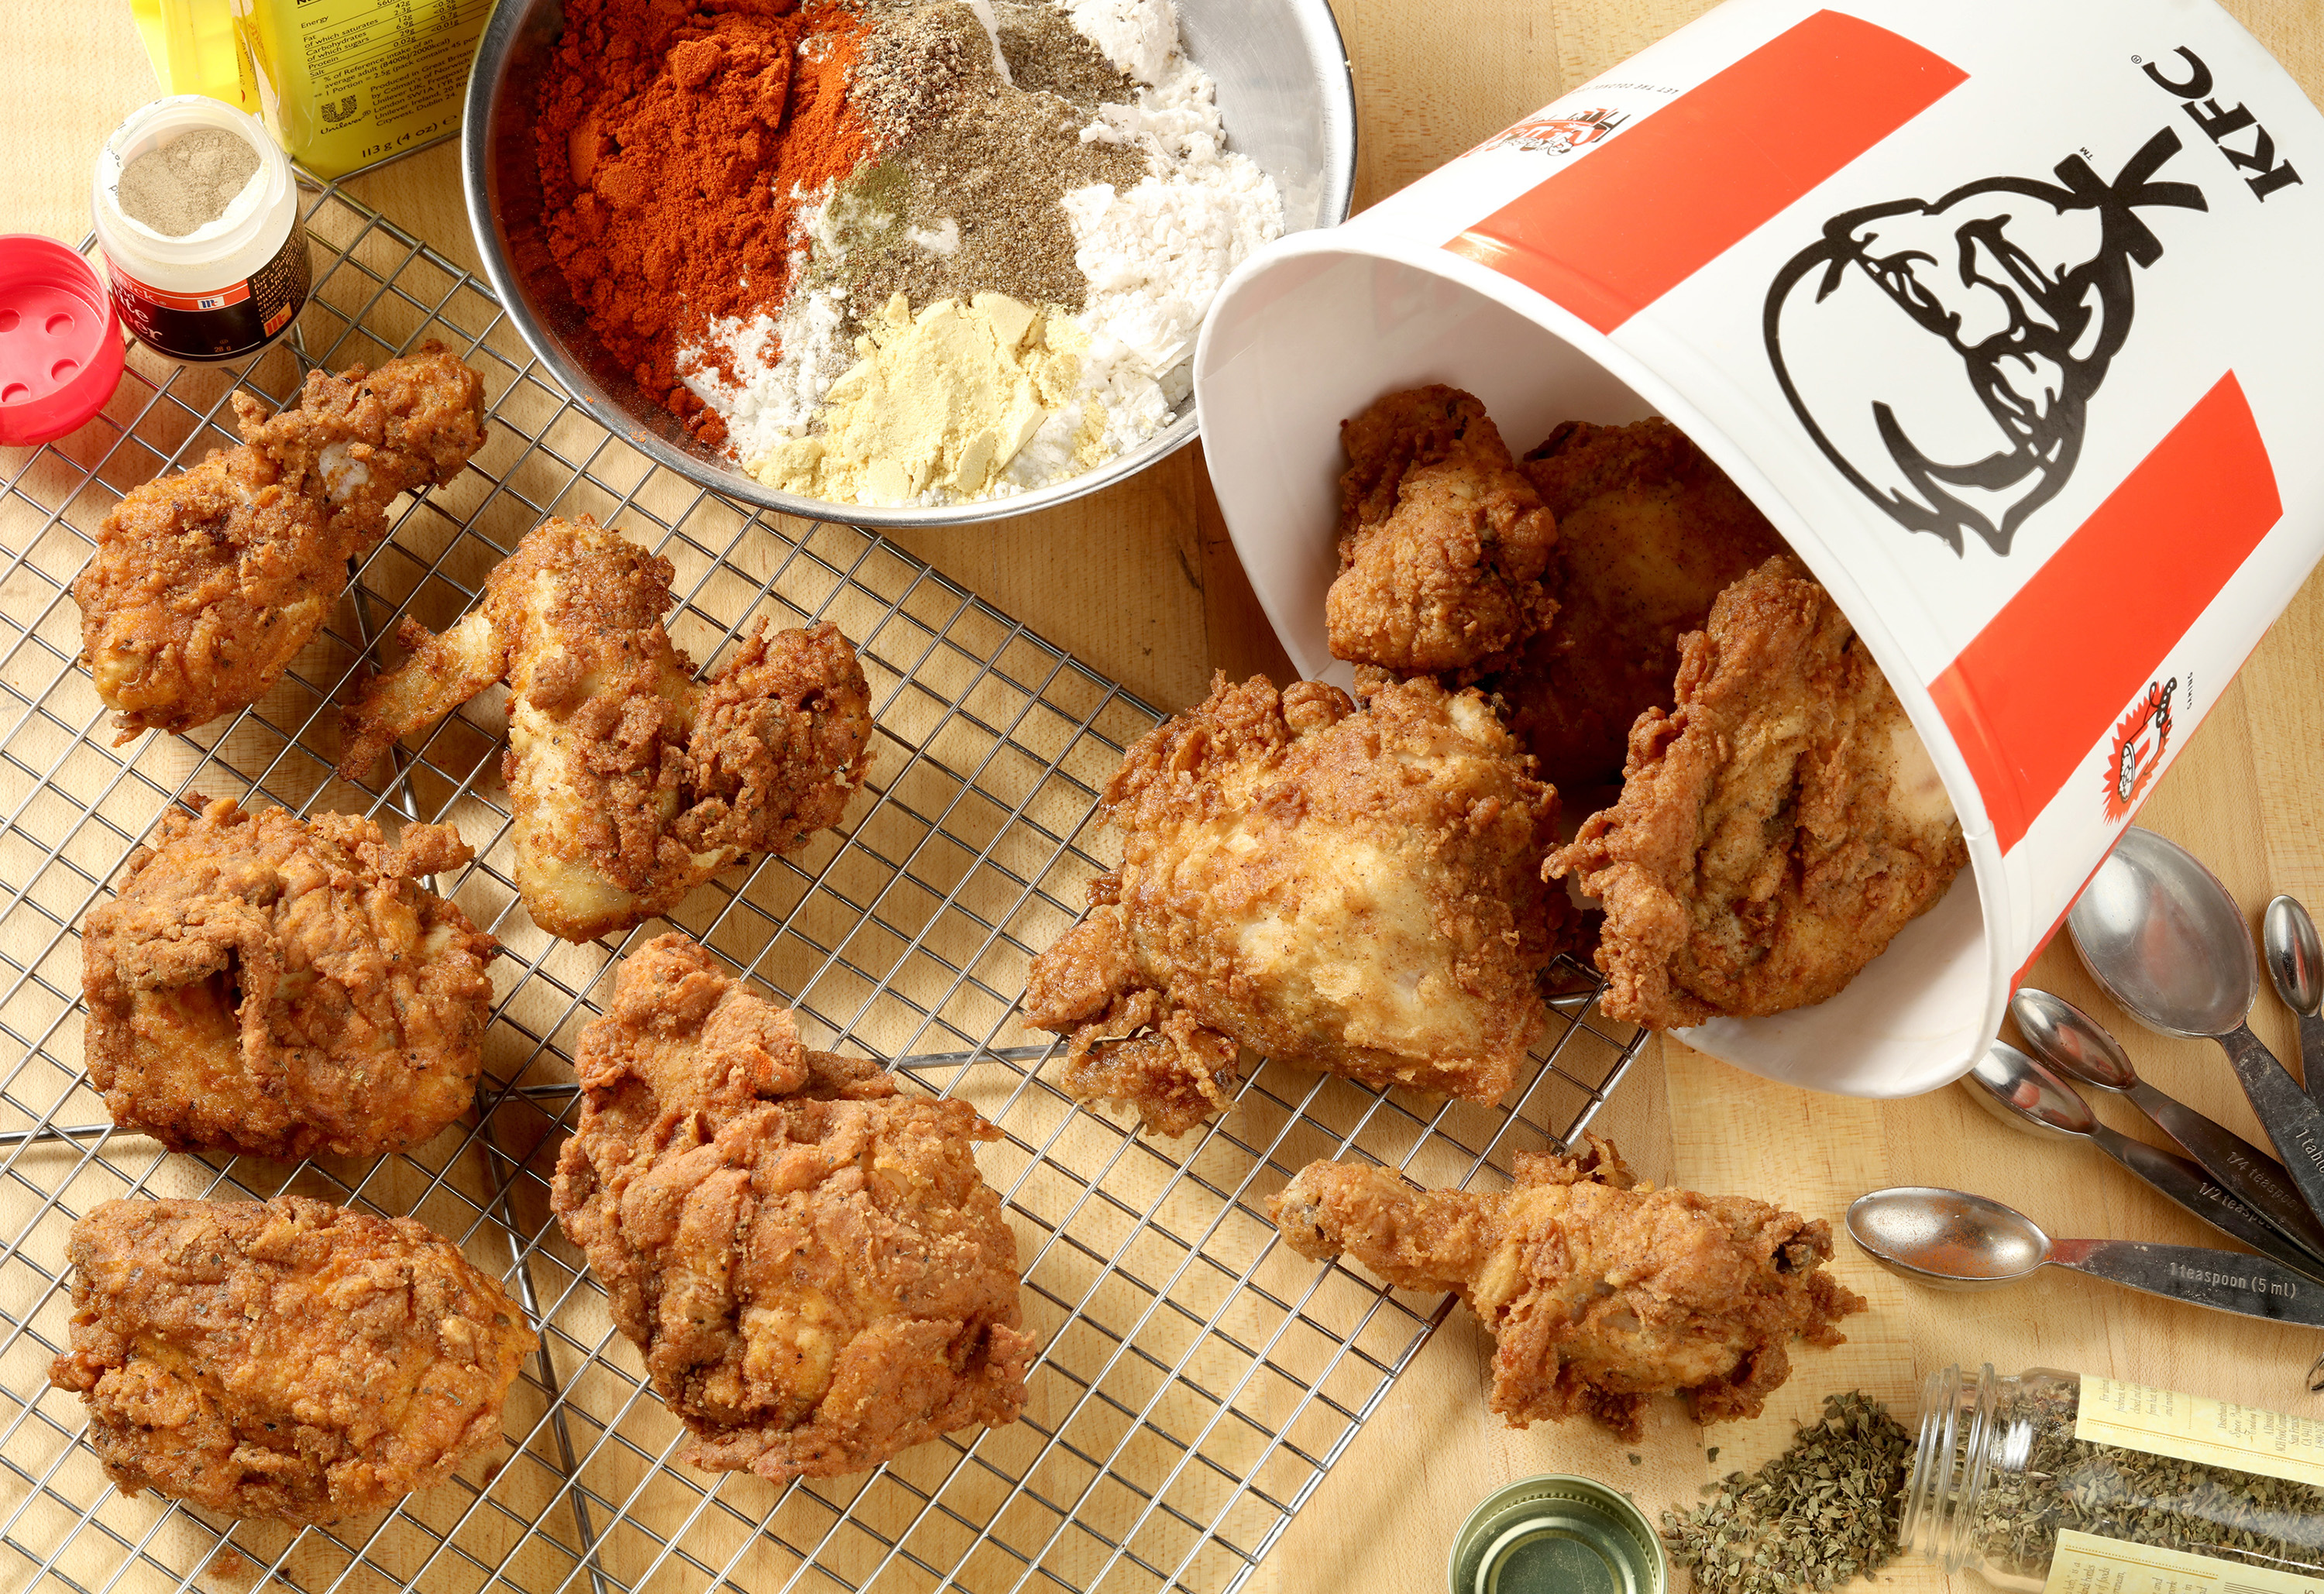 We didn't taste much of a difference between Kentucky Fried Chicken, right, and the fried chicken, left, on wire rack, we made in our test kitchen using a recipe that may - or may not - be Colonel Sanders' secret blend of 11 herbs and spices.